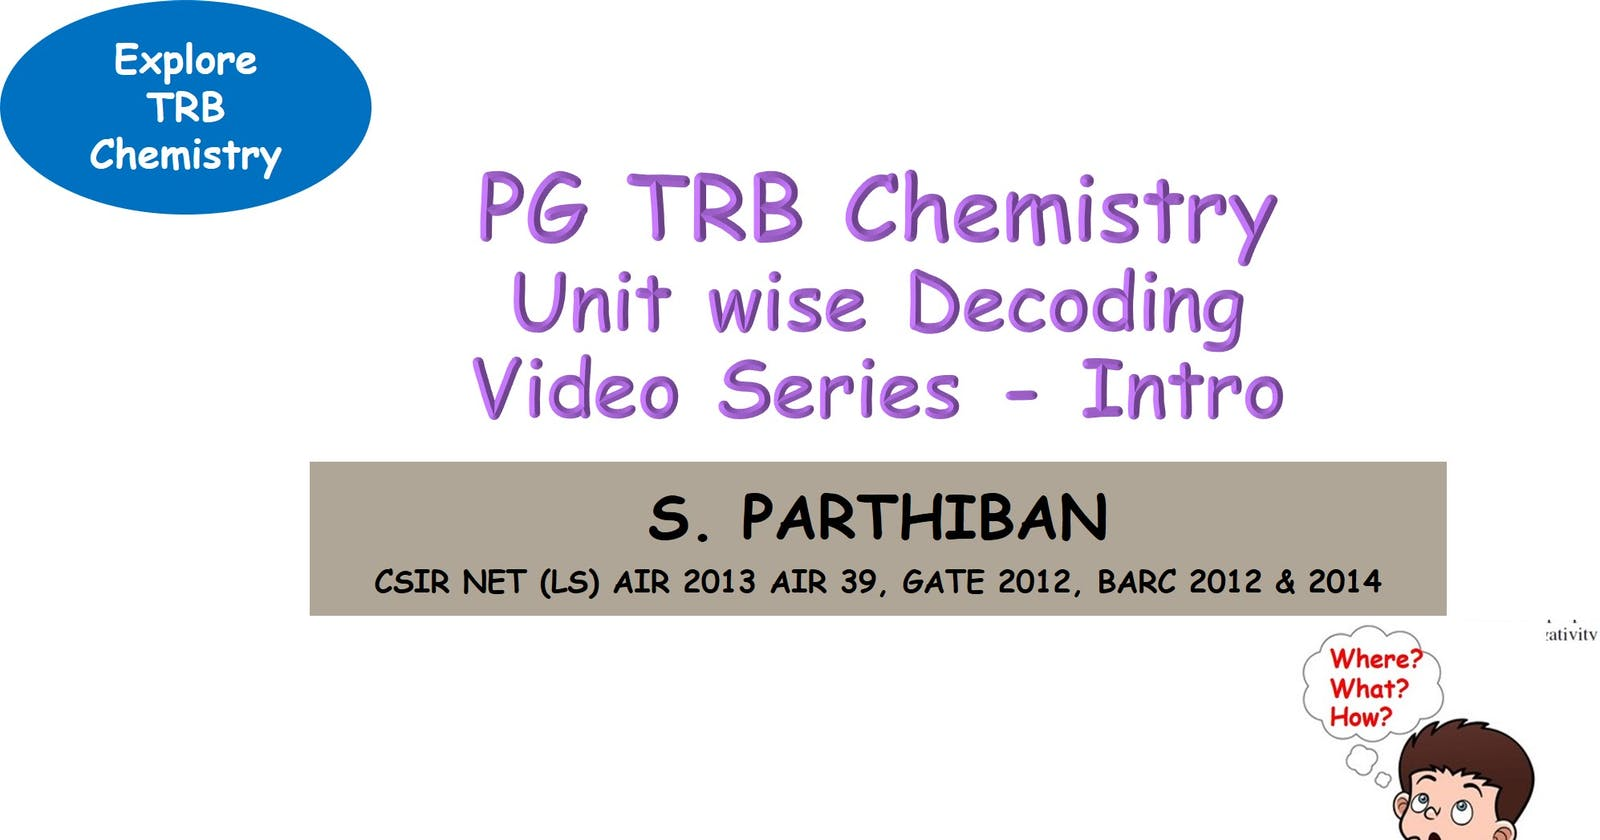 PG TRB Chemistry  Unit wise decoding video series  Introduction